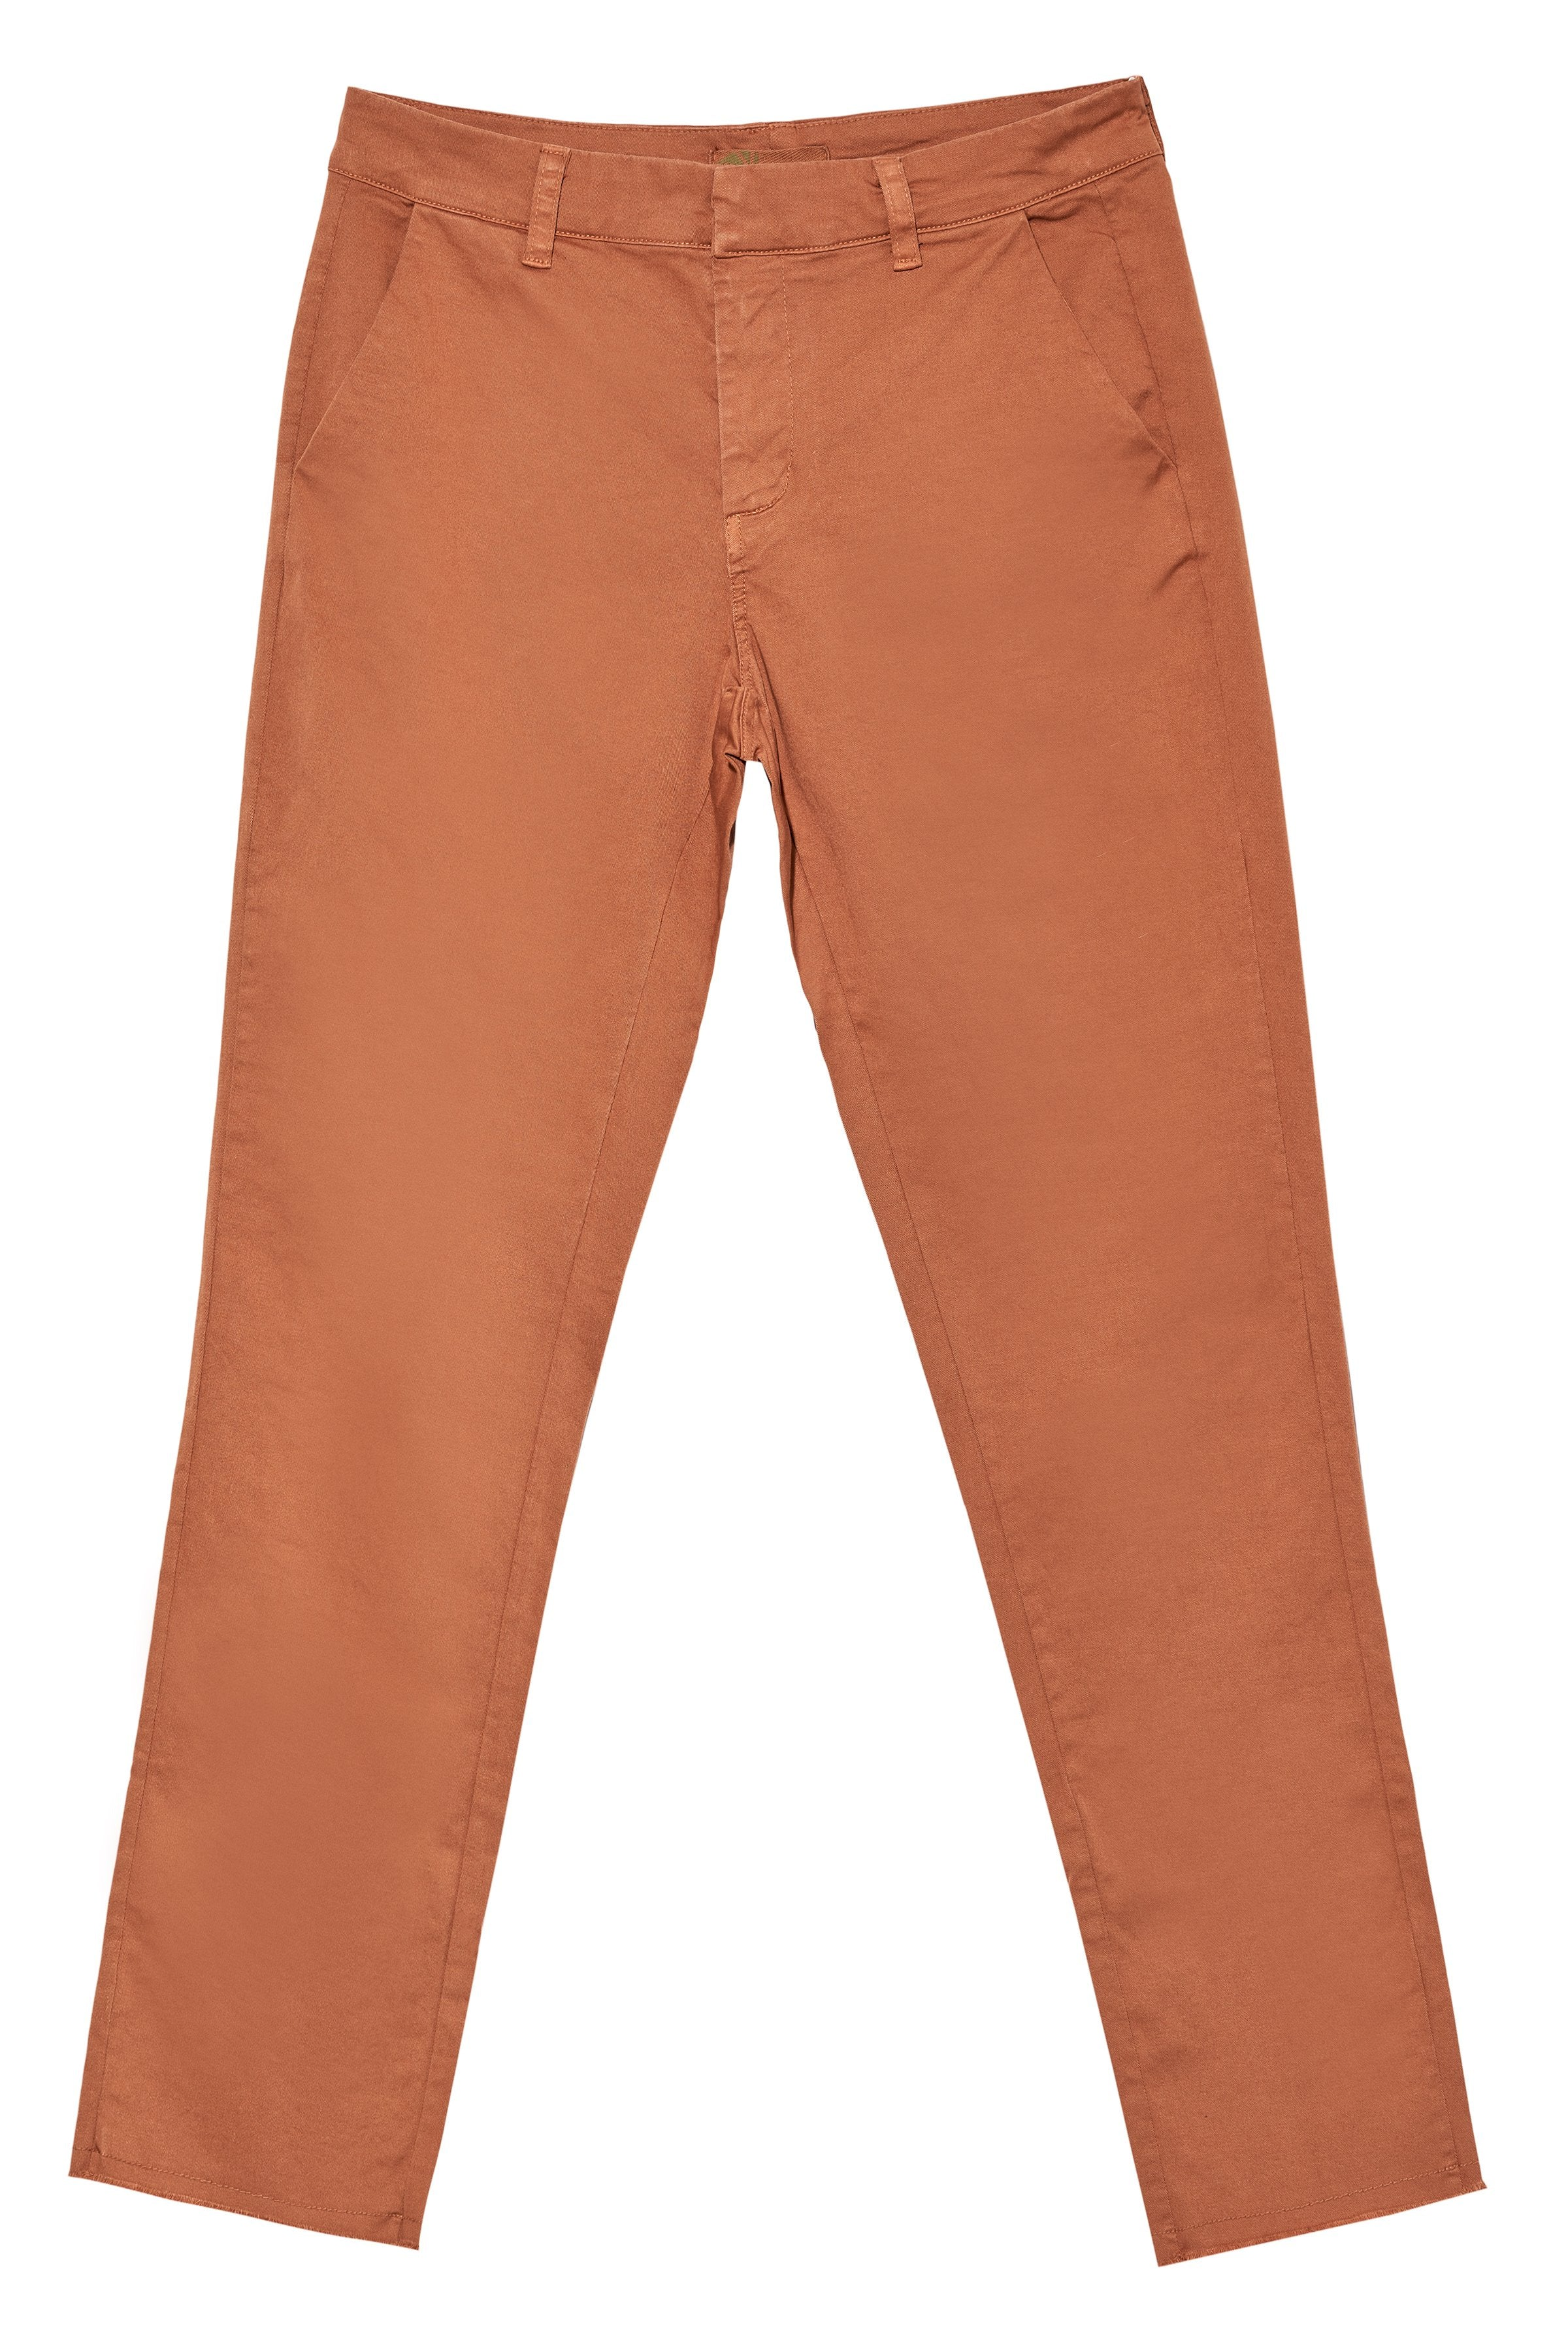 Local - The Island Casual Pant